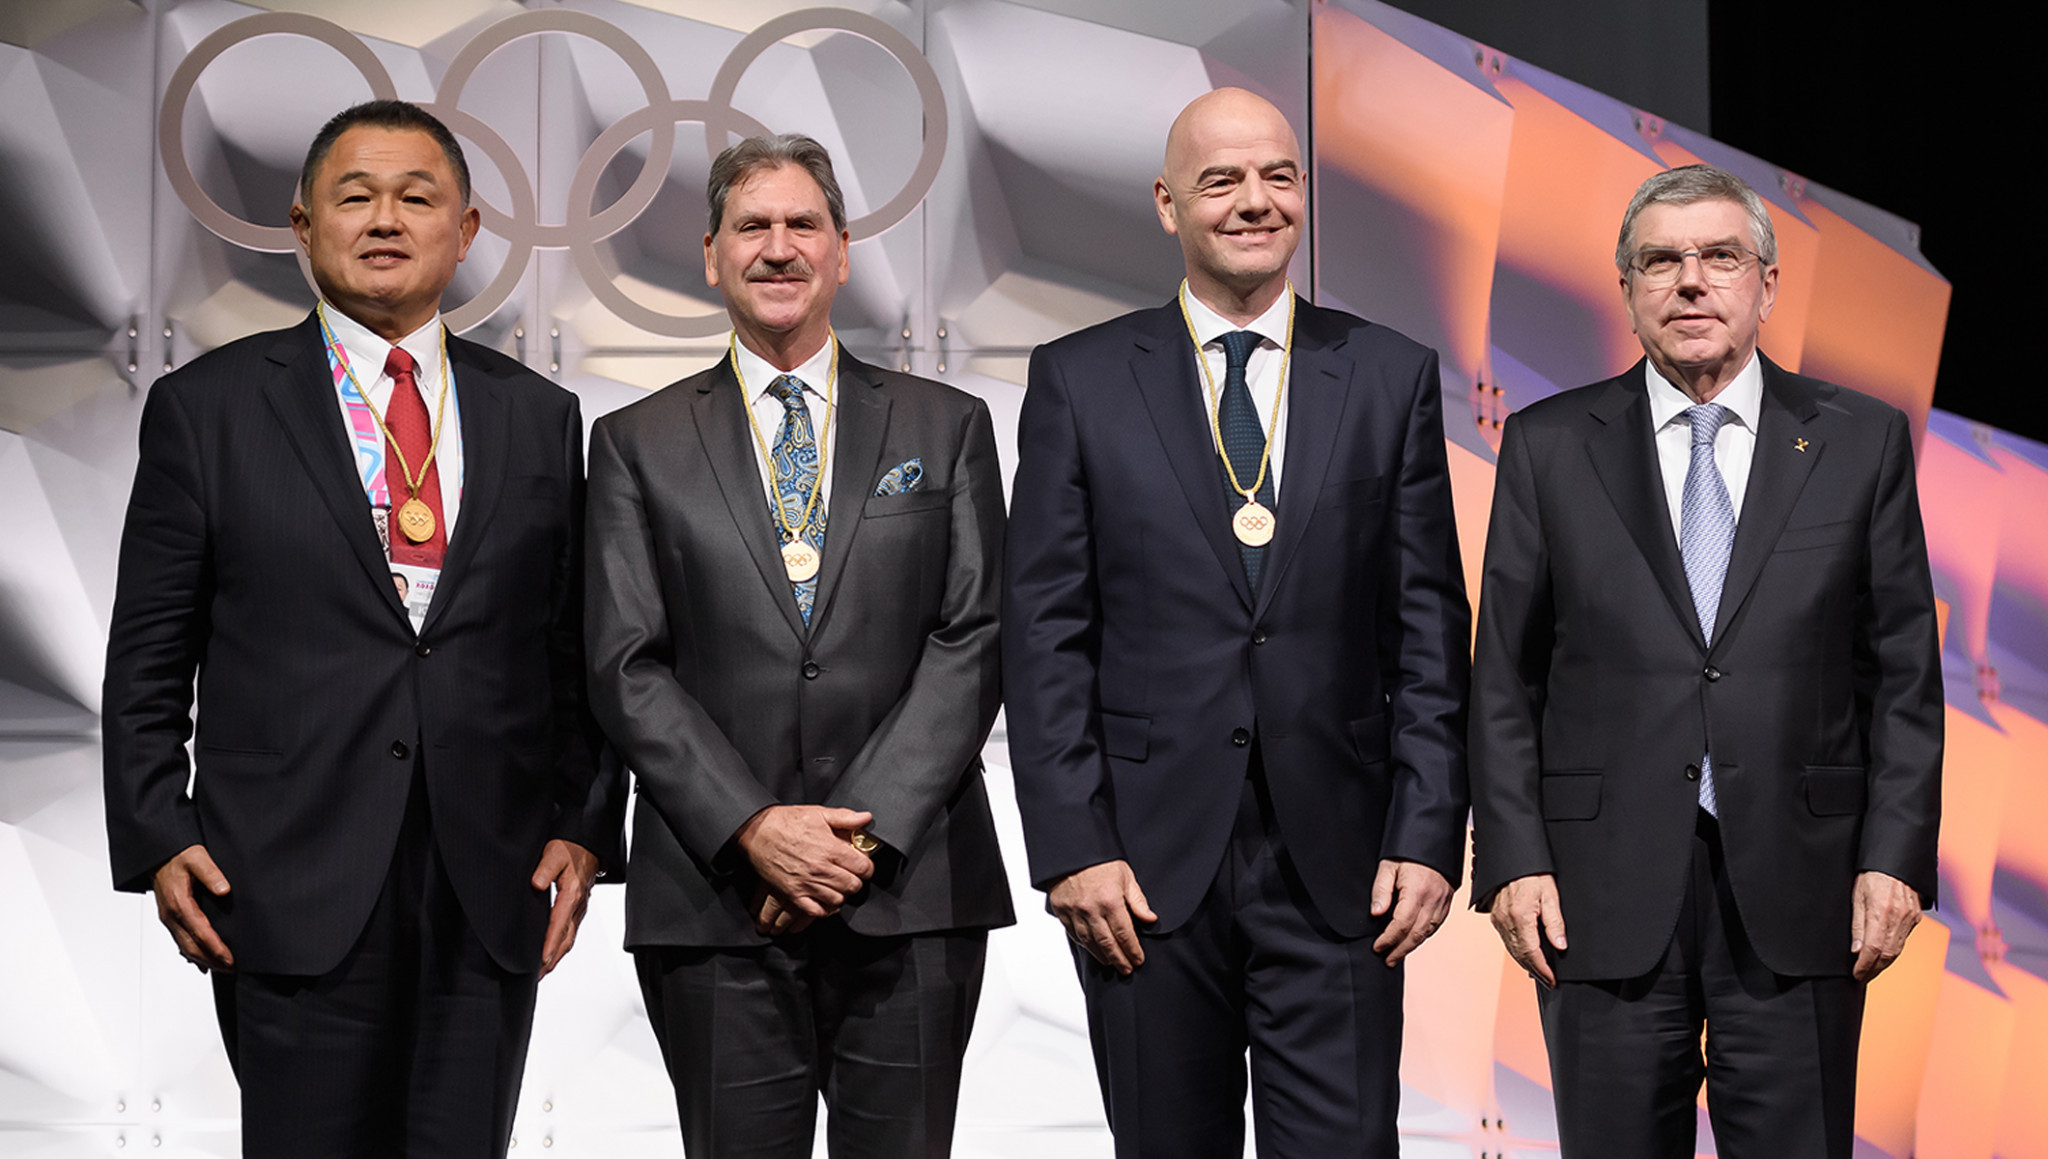 Infantino among new members elected at IOC Session